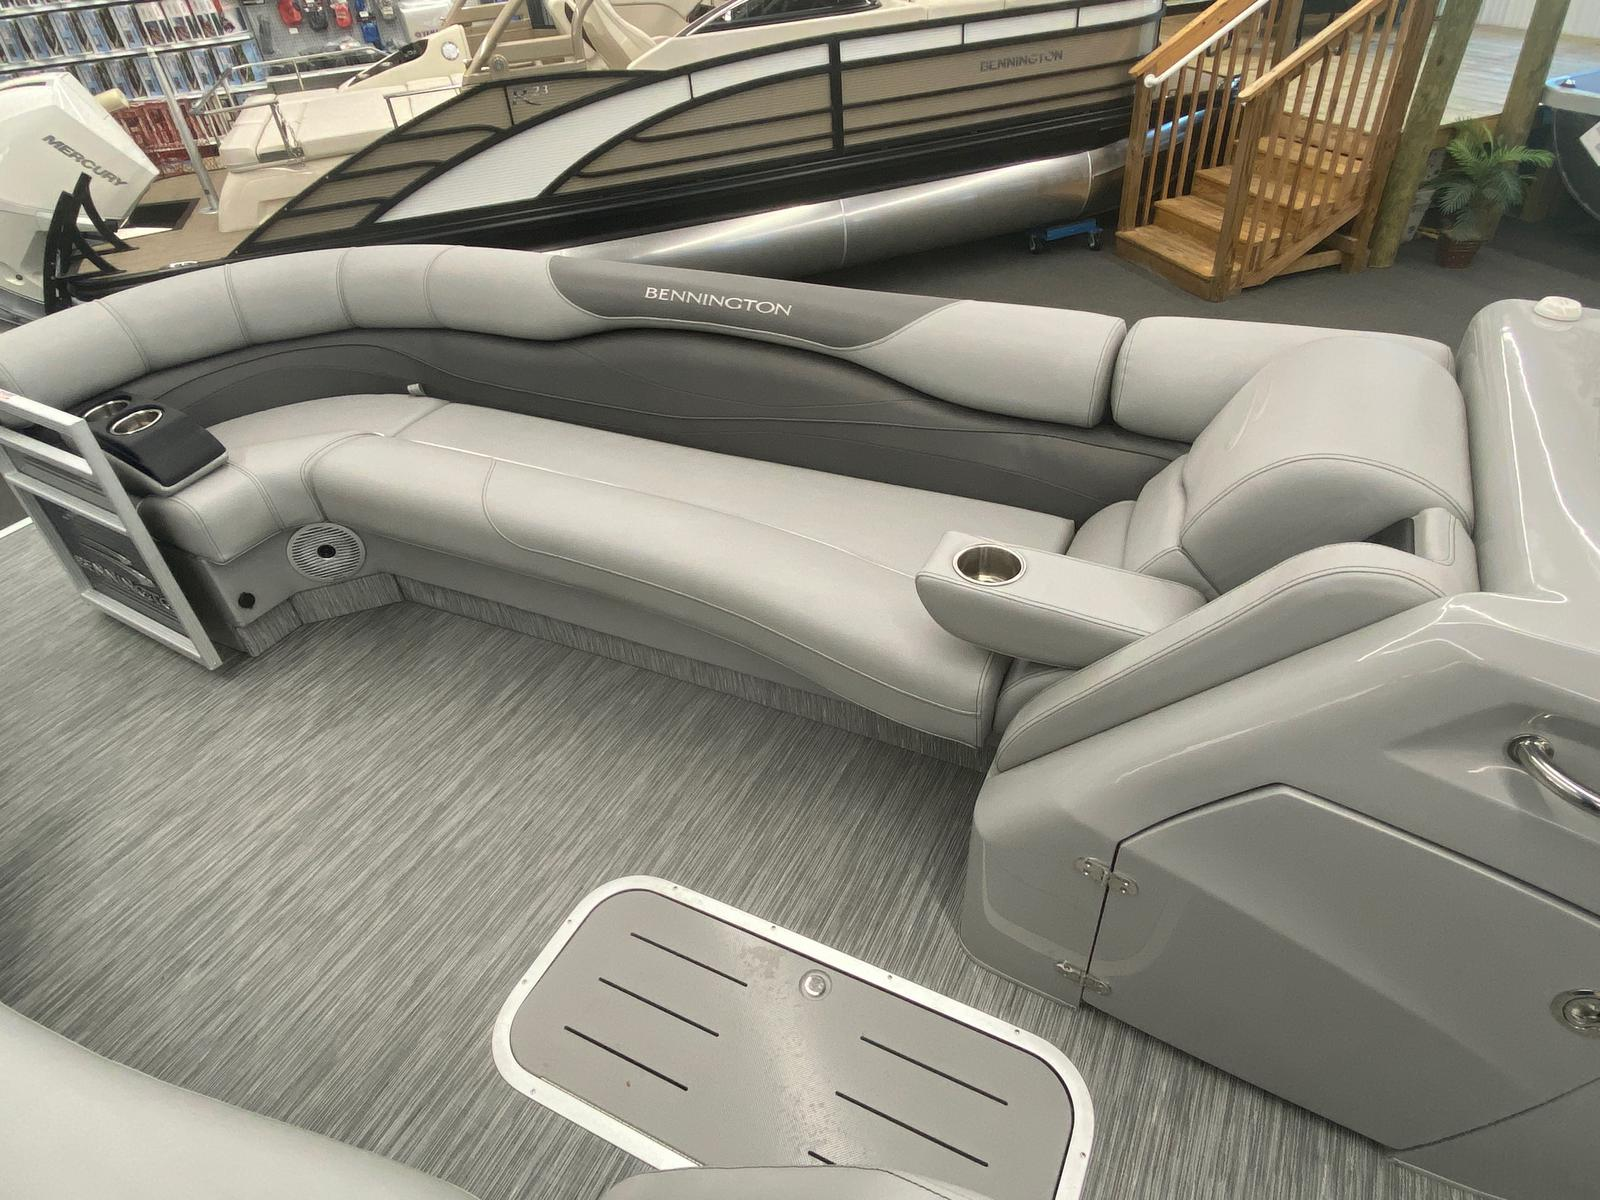 2021 Bennington boat for sale, model of the boat is 25 RL Tri-Toon ESP Performance Package & Image # 3 of 16